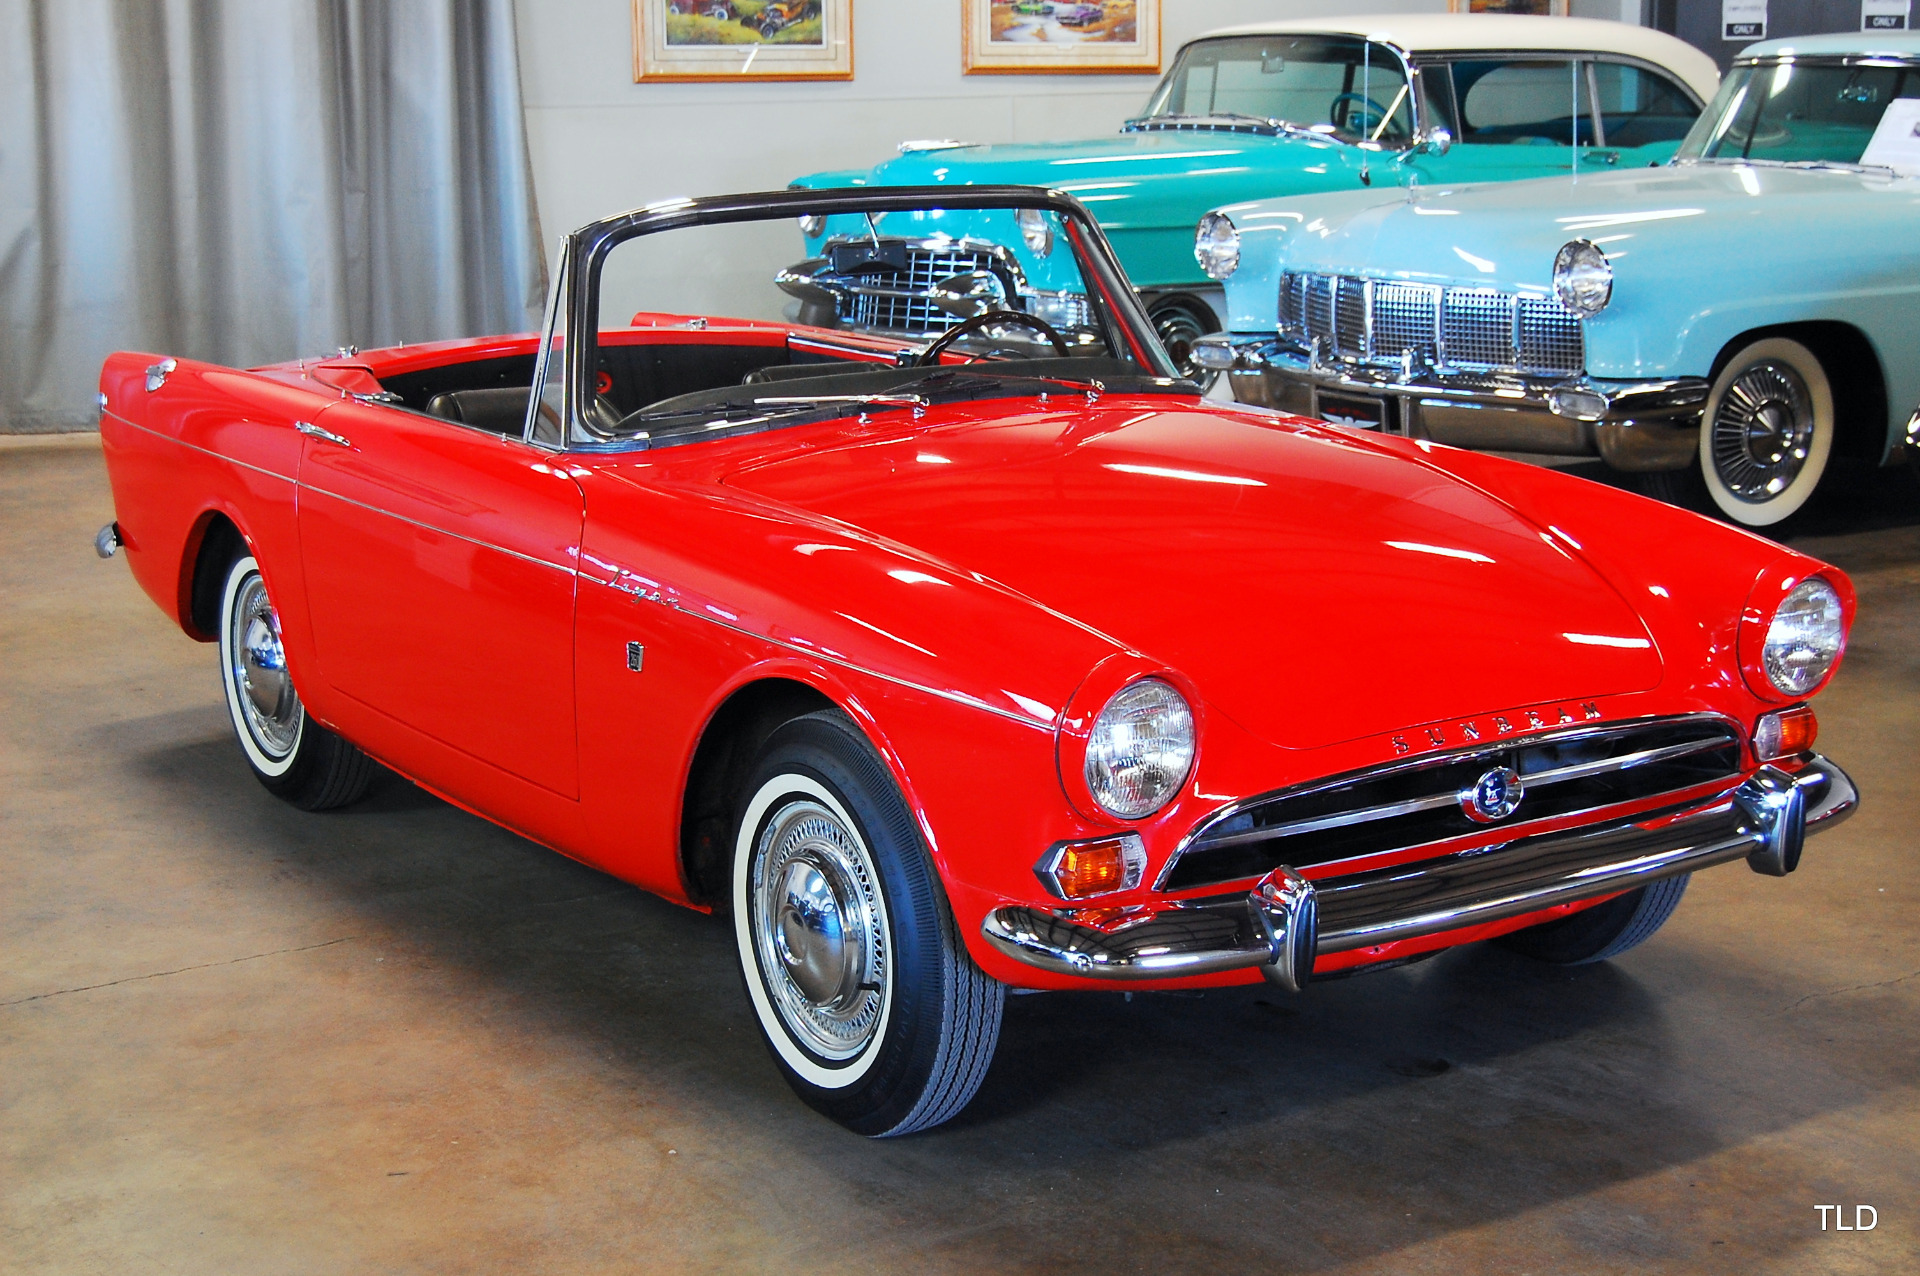 1965 Sunbeam Tiger Used Sunbeam For Sale In North